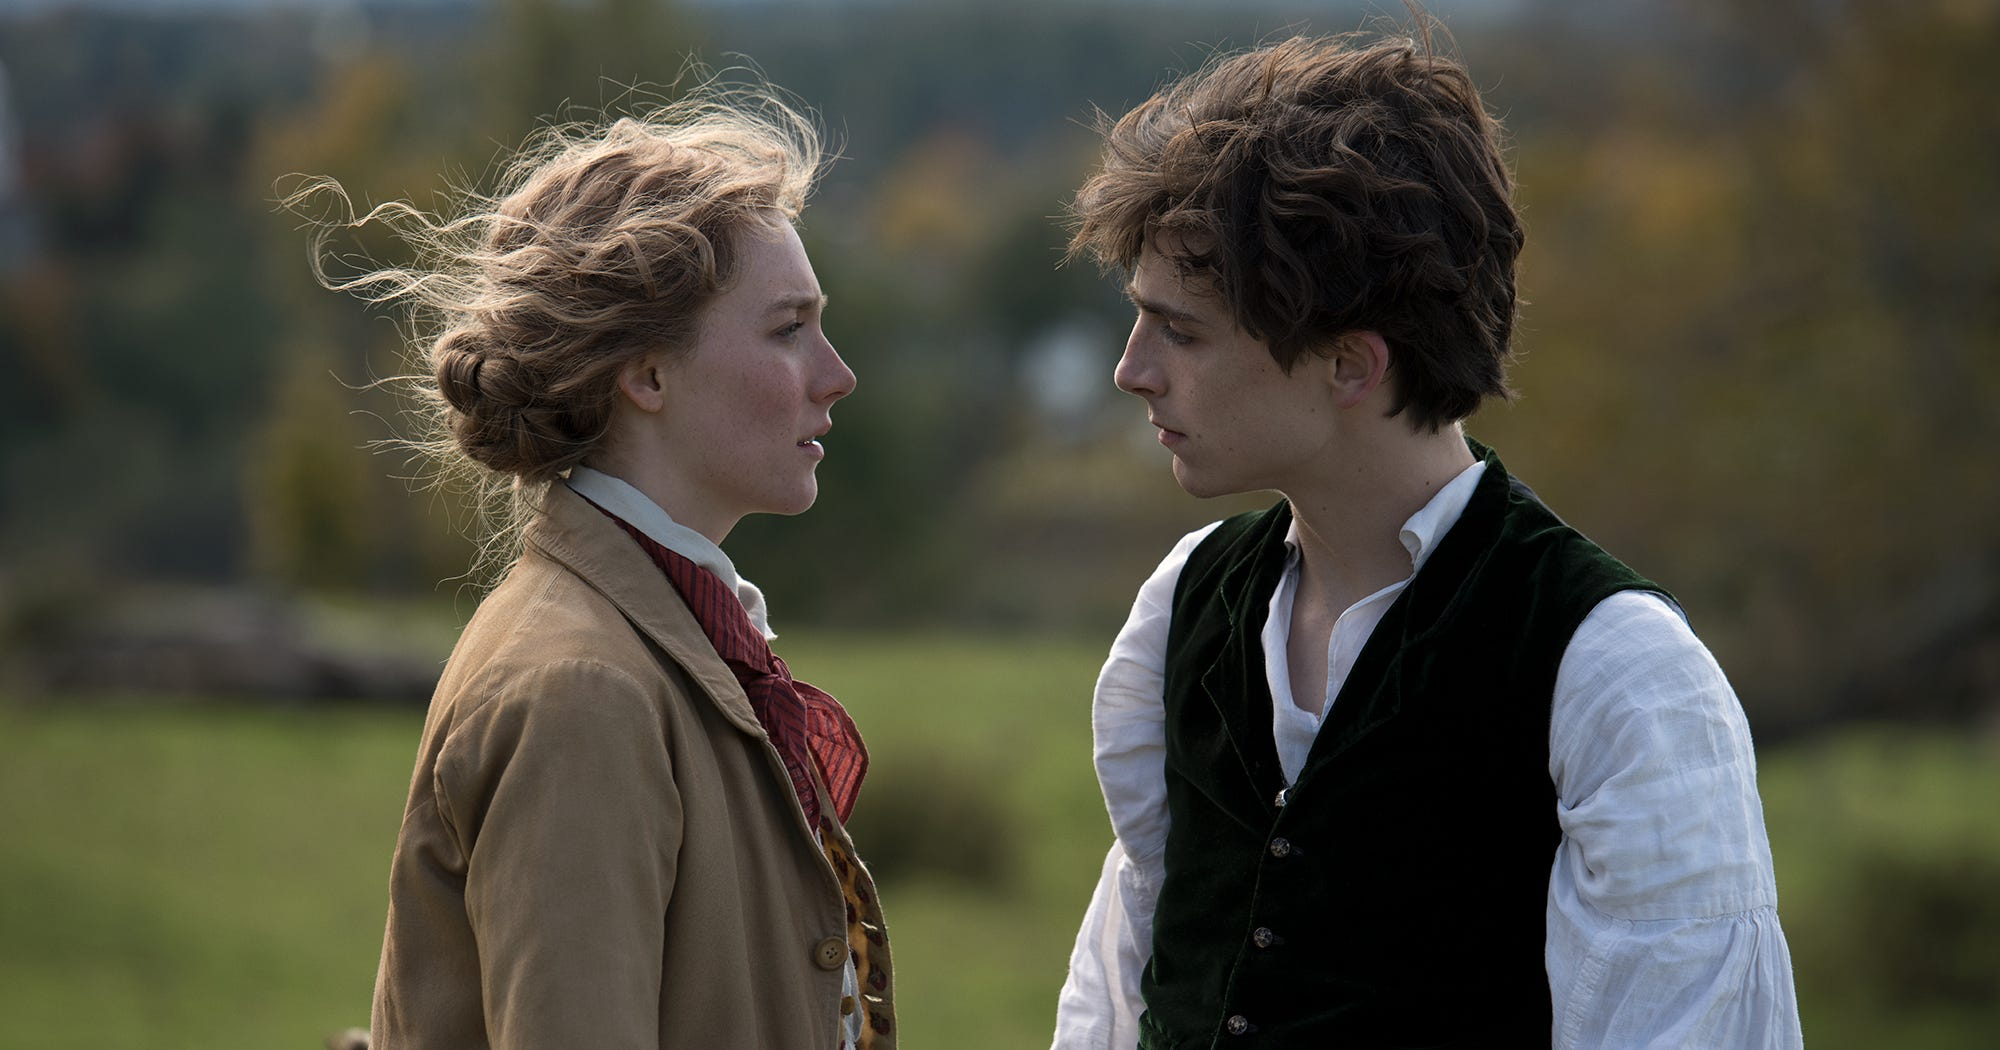 """Saoirse & Timothée Are Here To Emotionally Wreck You In The """"Little Women"""" Trailer"""